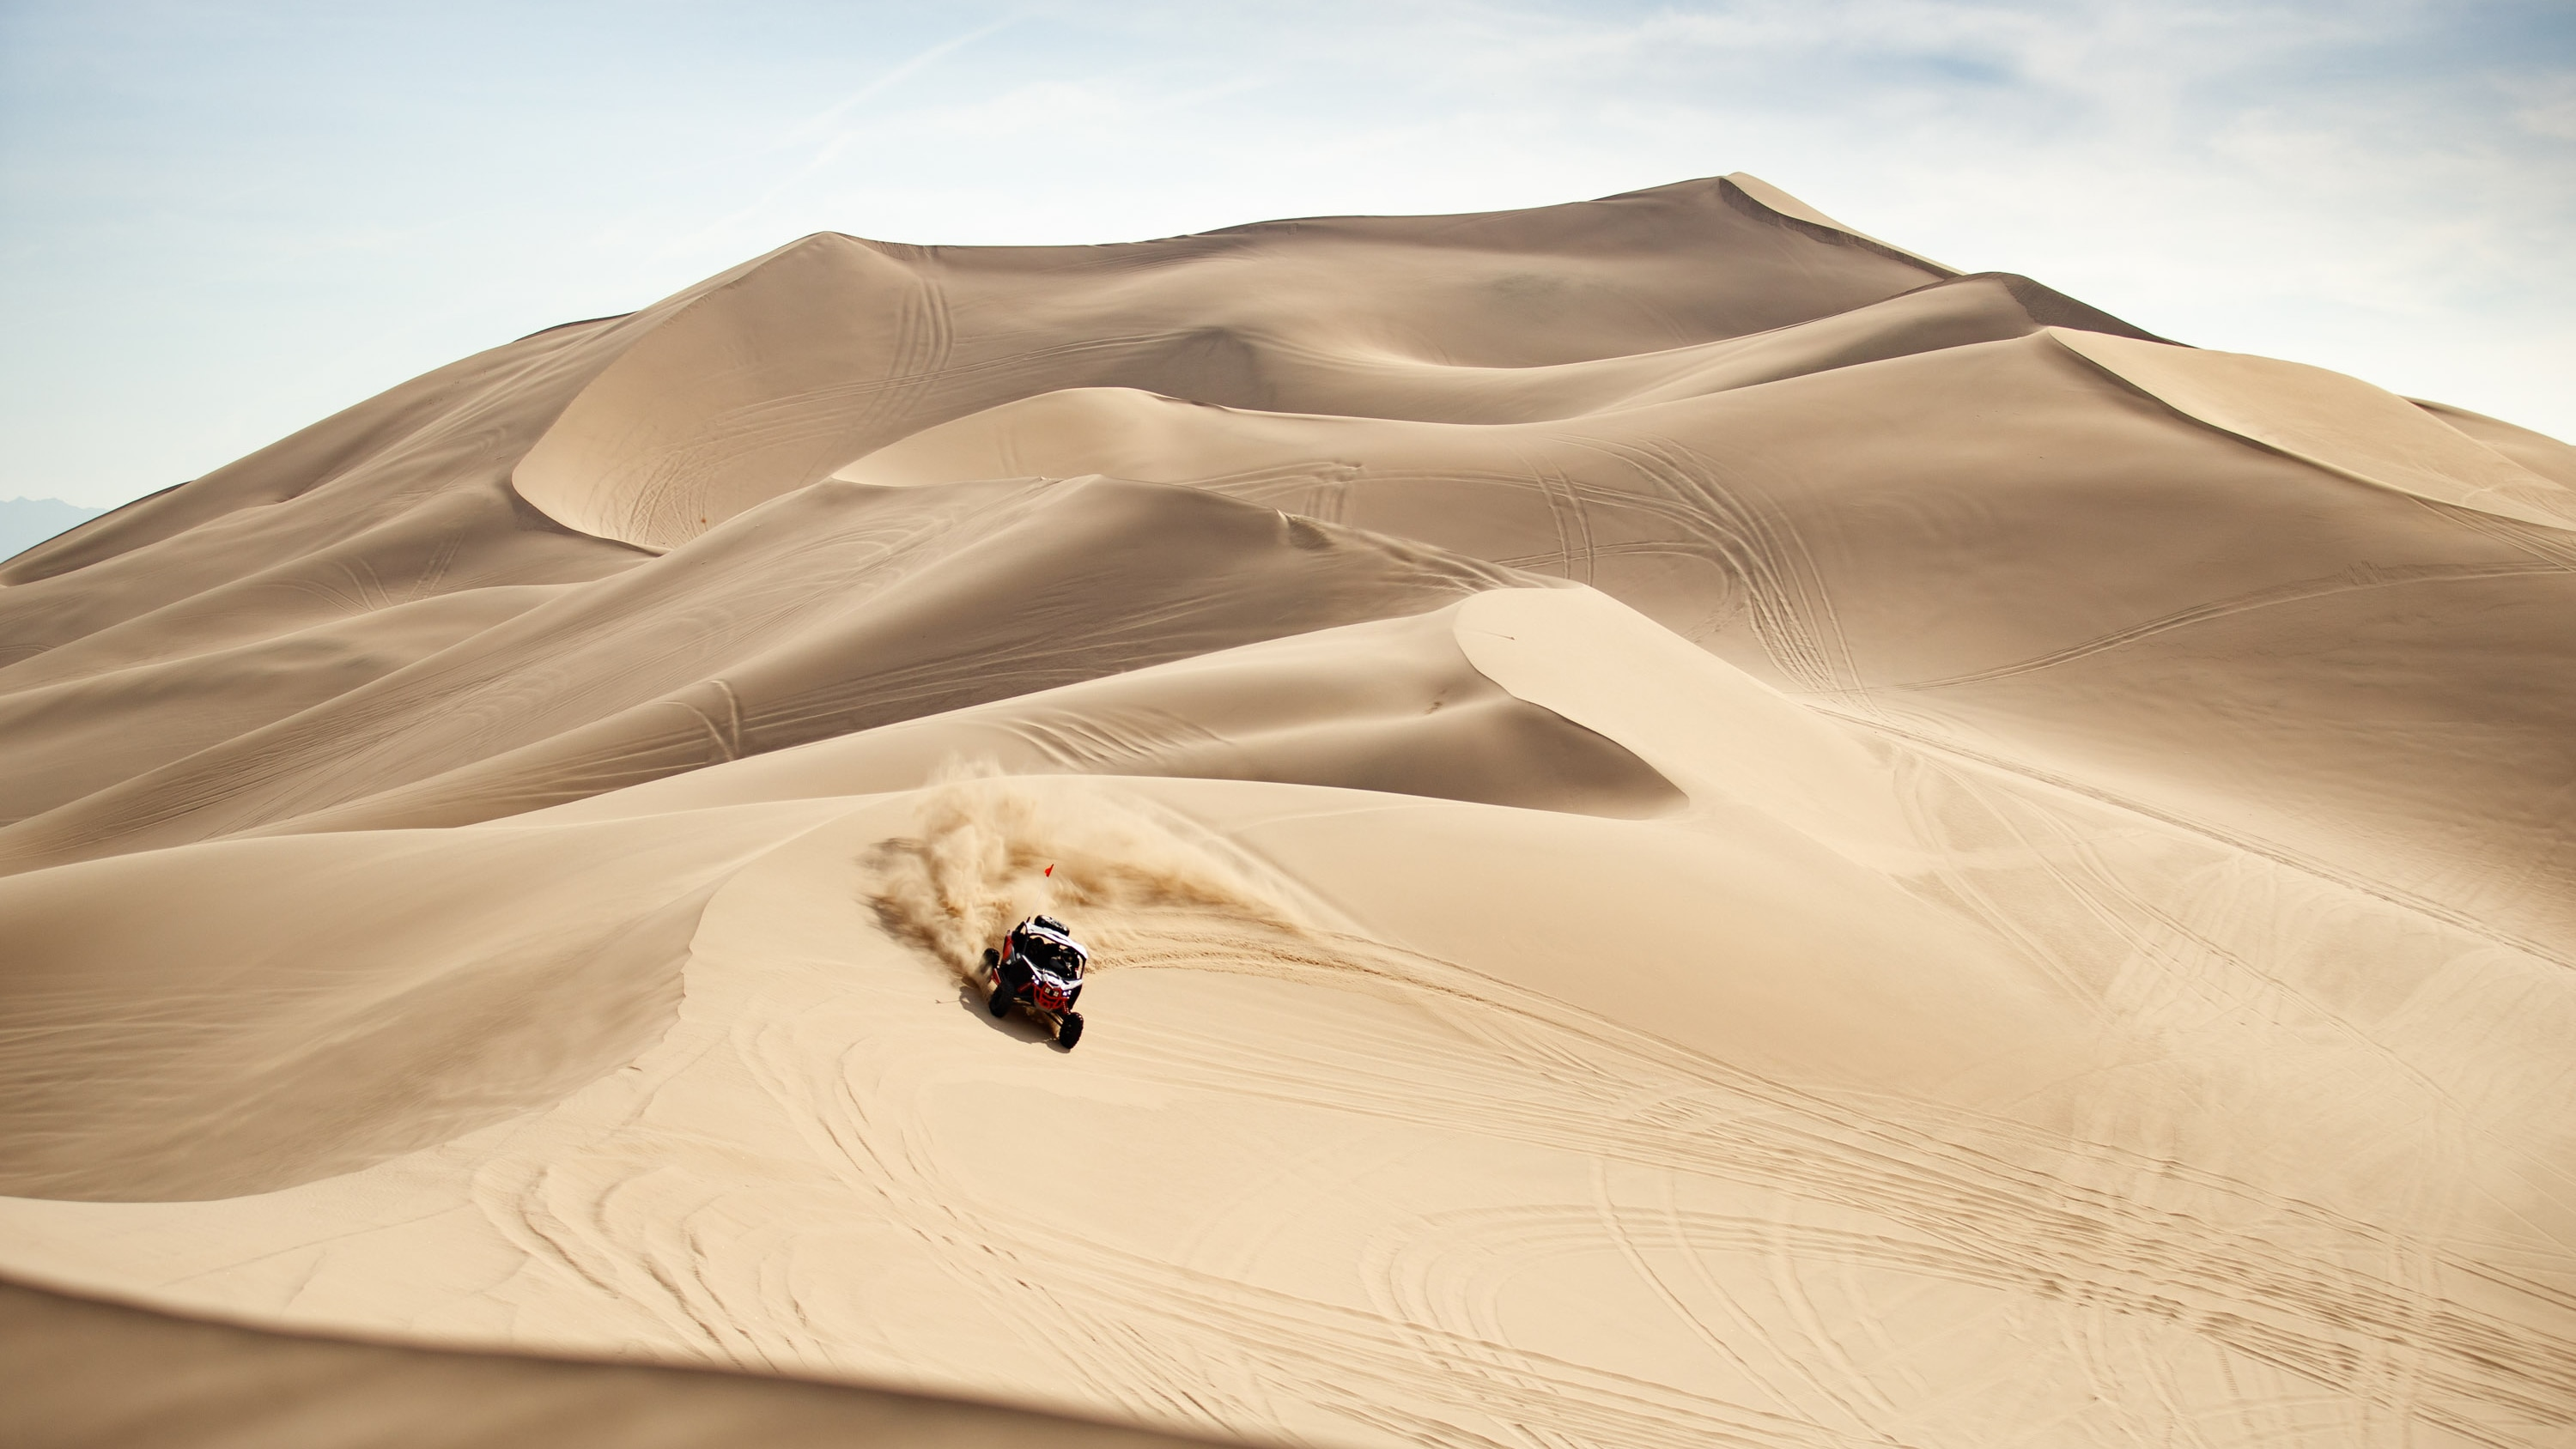 Single Maverick 2020 in the desert